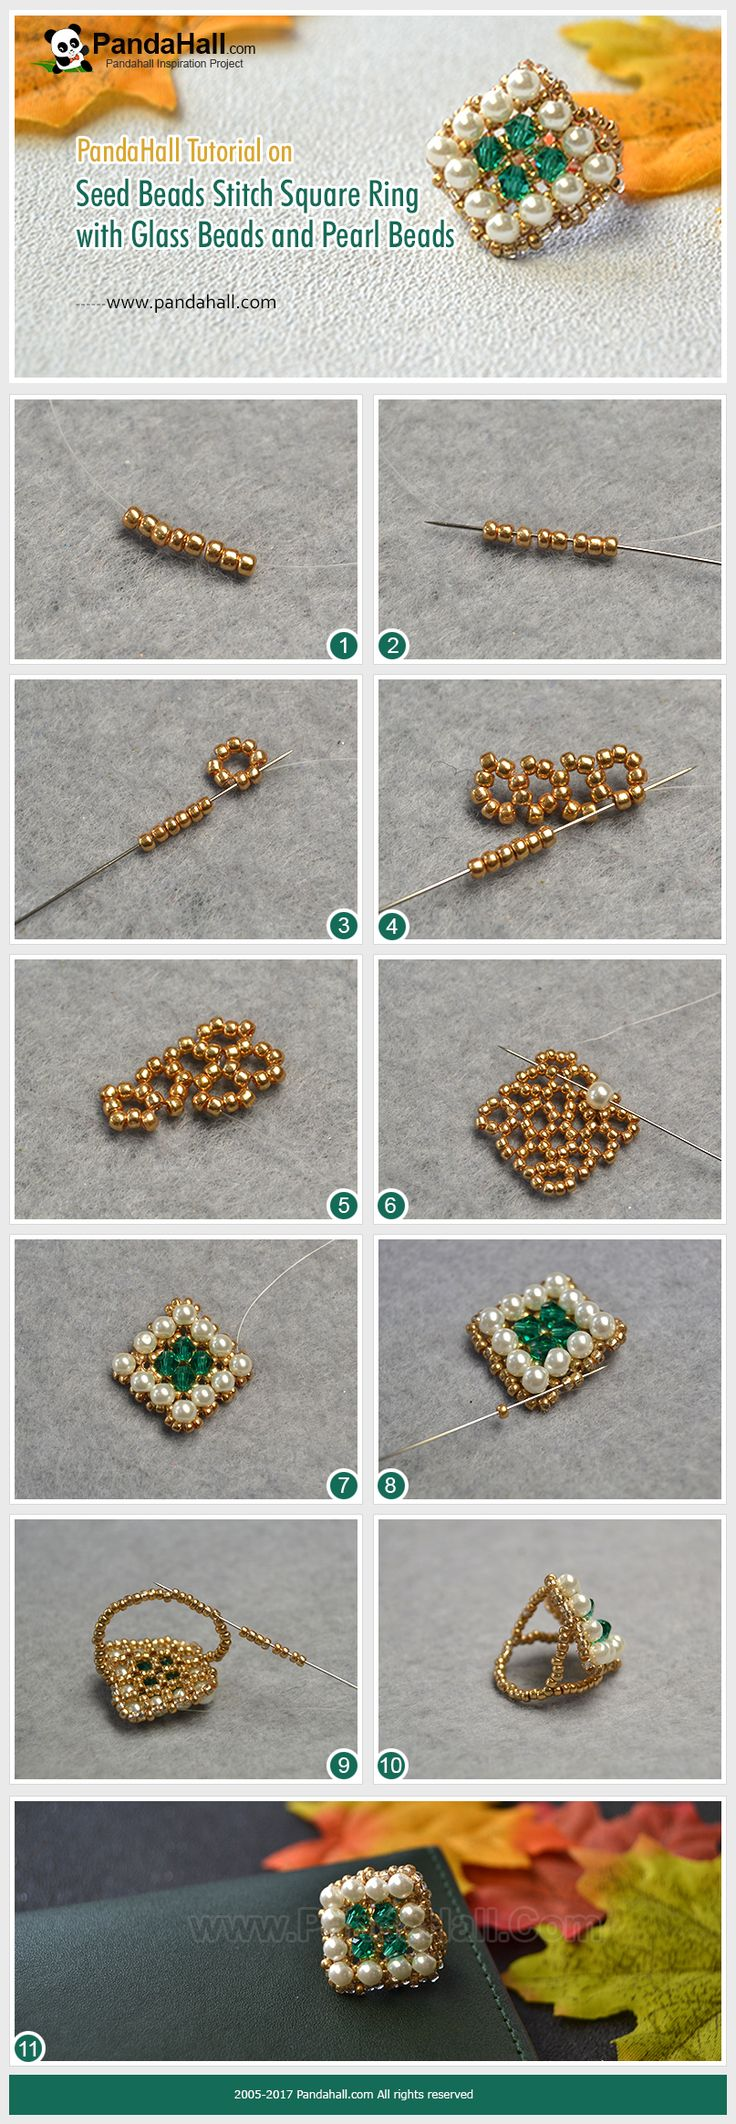 Seed Beads Stitch Square Ring with Glass Beads and Pearl Beads The main materials of the ring are gold seed beads, green bicone glass beads and glass pearl beads. The way is to stitch the beads in a square shape. Wanna have a try? #seedbeads #diy #glass #Pandahall #tutorial #ring #handmade #favehandmade #diyring #jewelrytutorial #handmadejewelry #jewelrylover